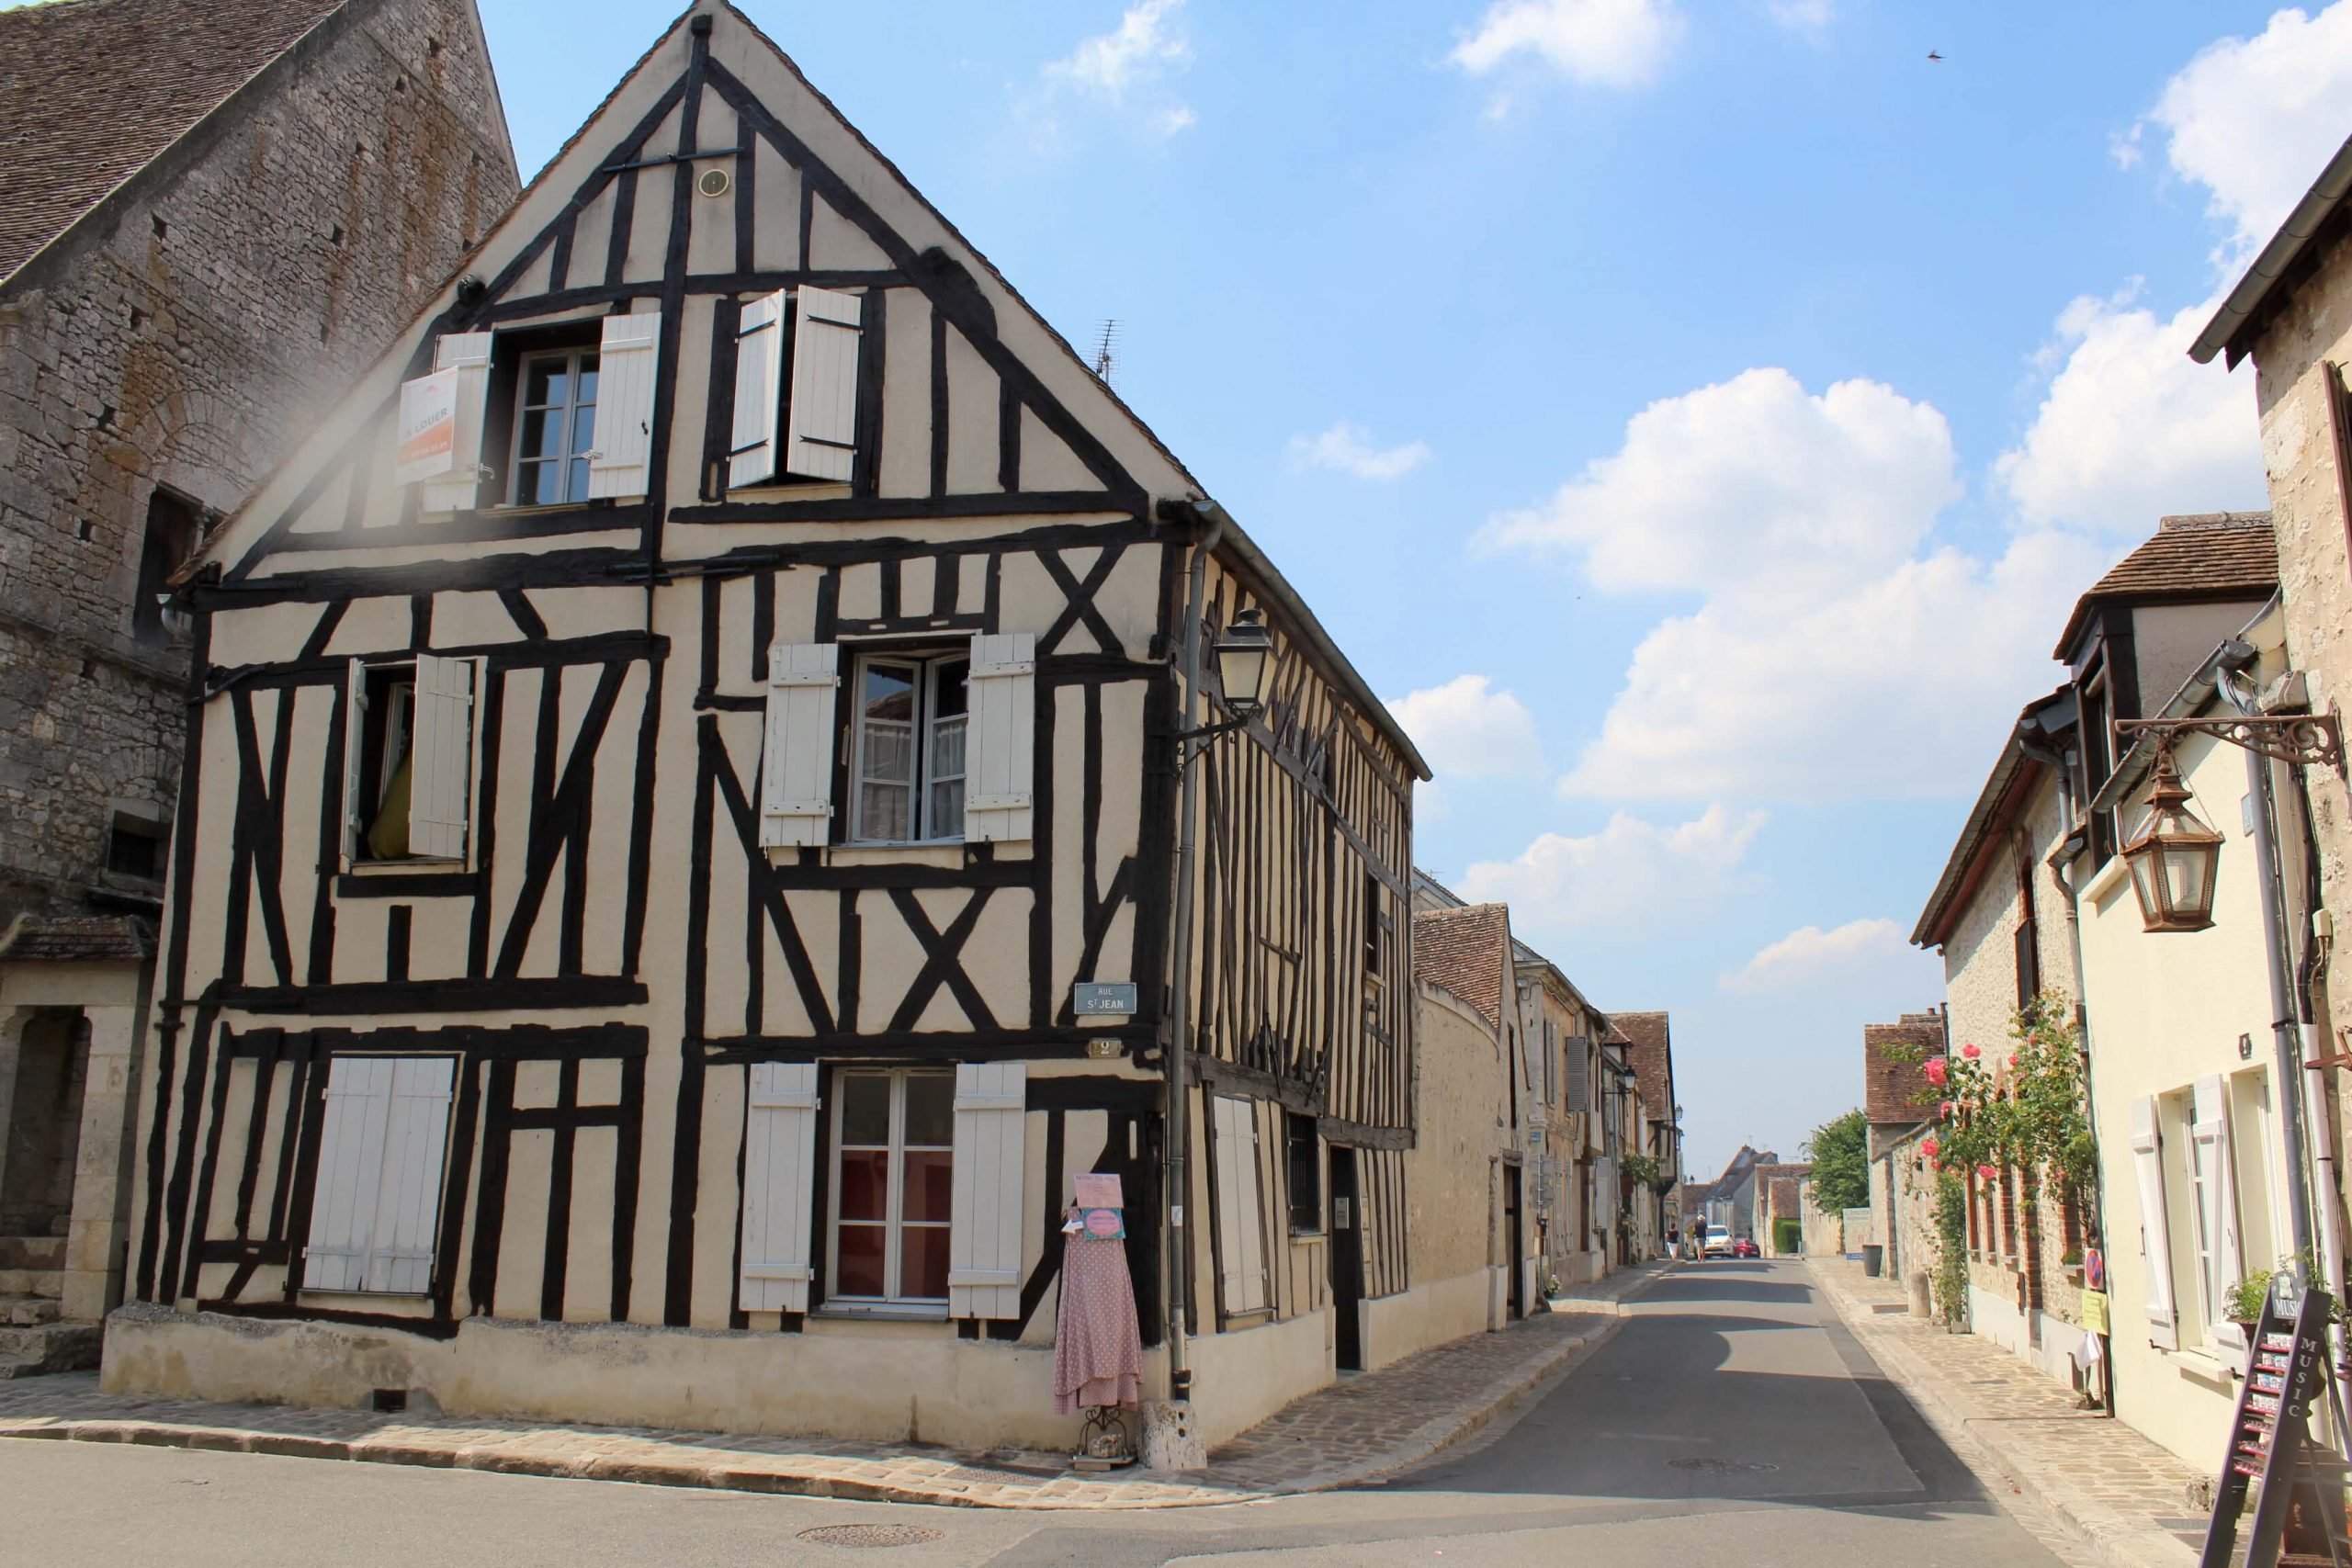 Exploring the medieval city of Provins - a great day trip from Paris